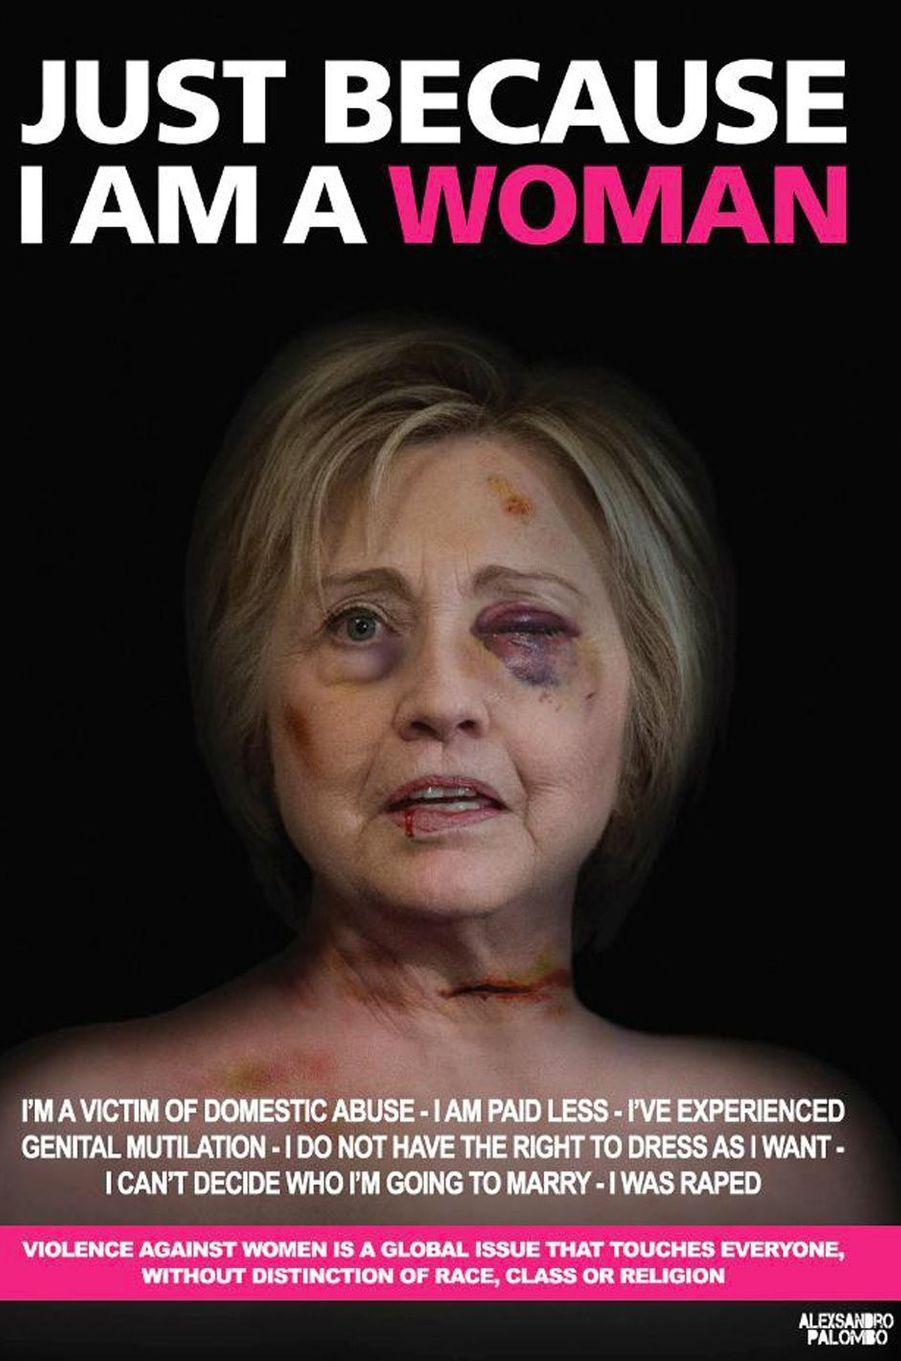 La campagne «Just because I am a Woman» de l'artiste AleXsandro Palombo. Ici Hillary Clinton.